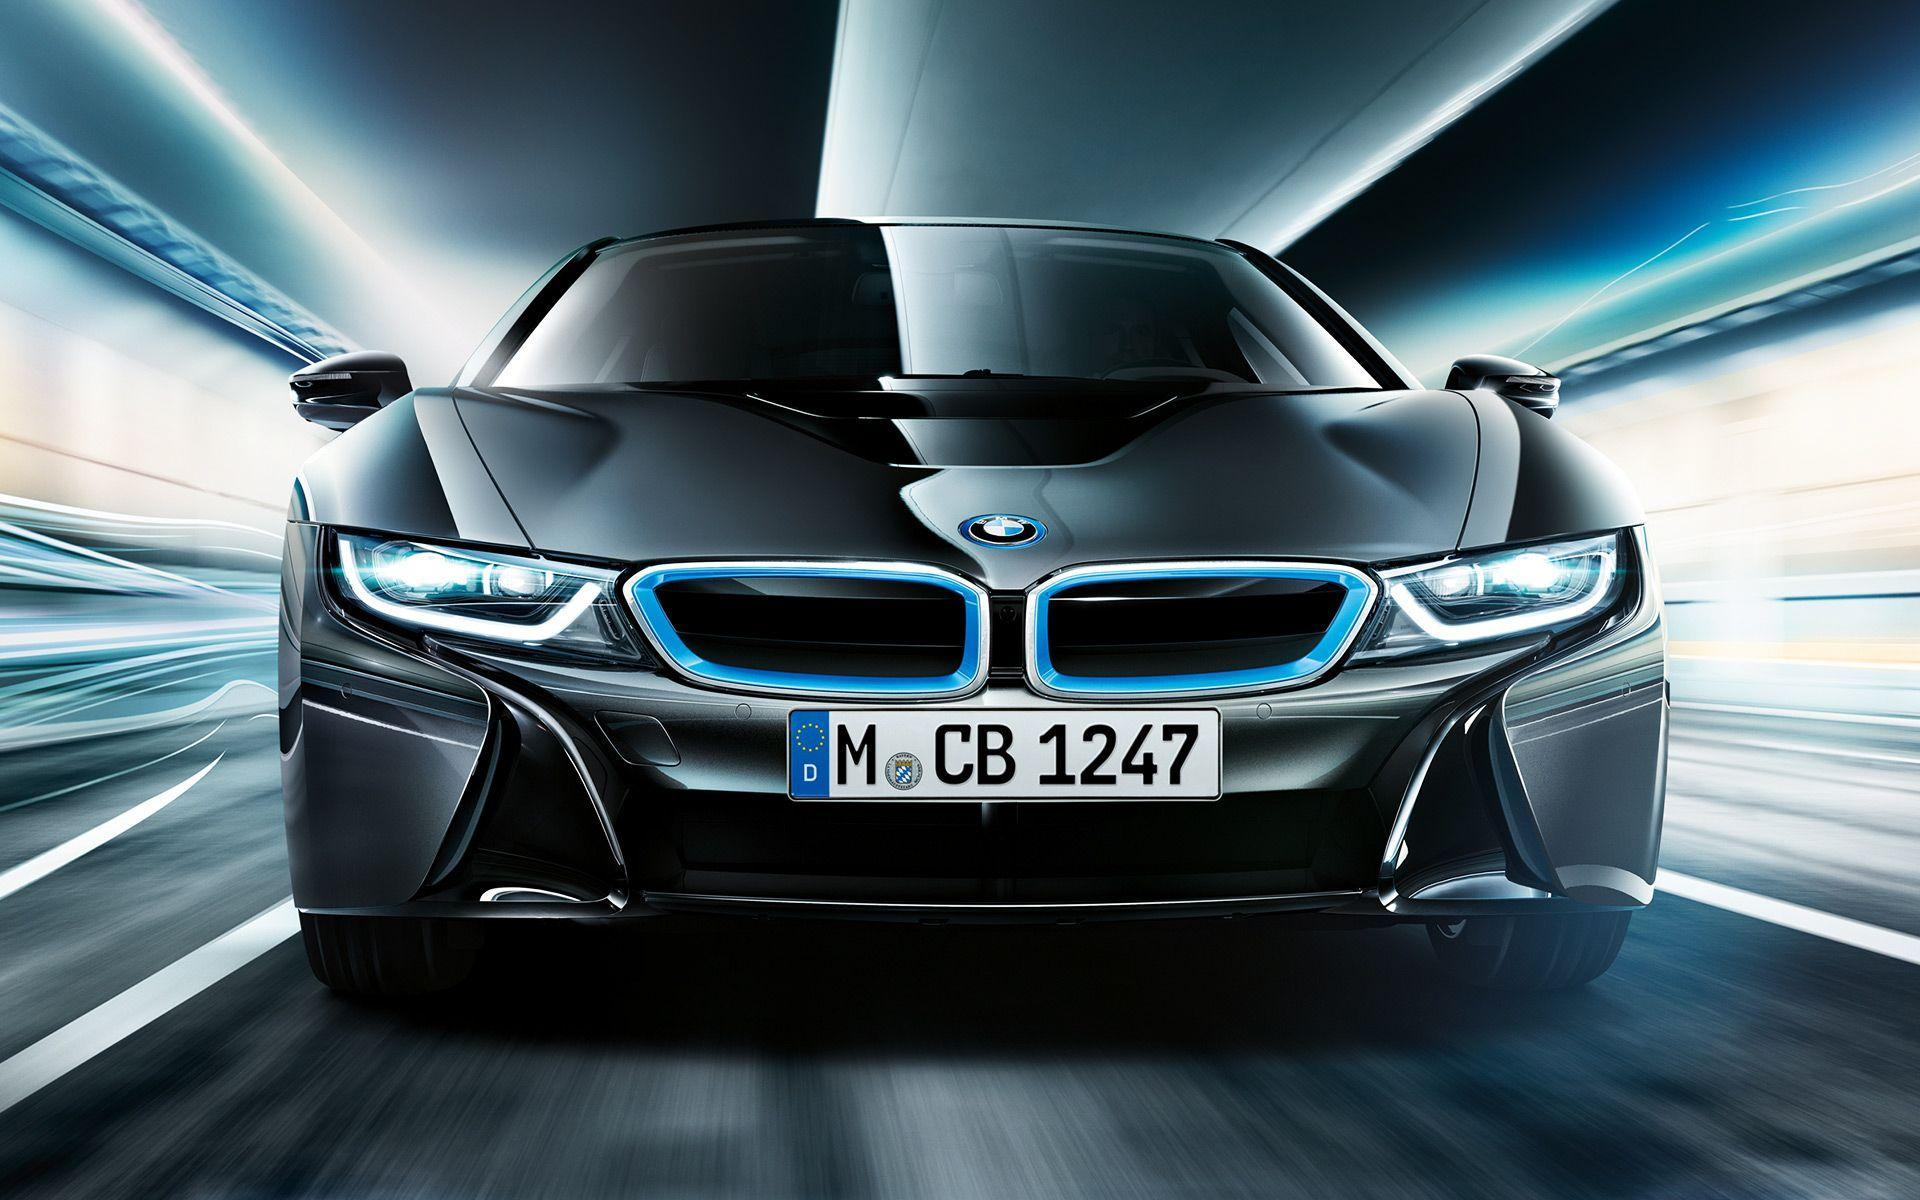 Wallpapers: BMW i8 Protonic Frozen Black Edition